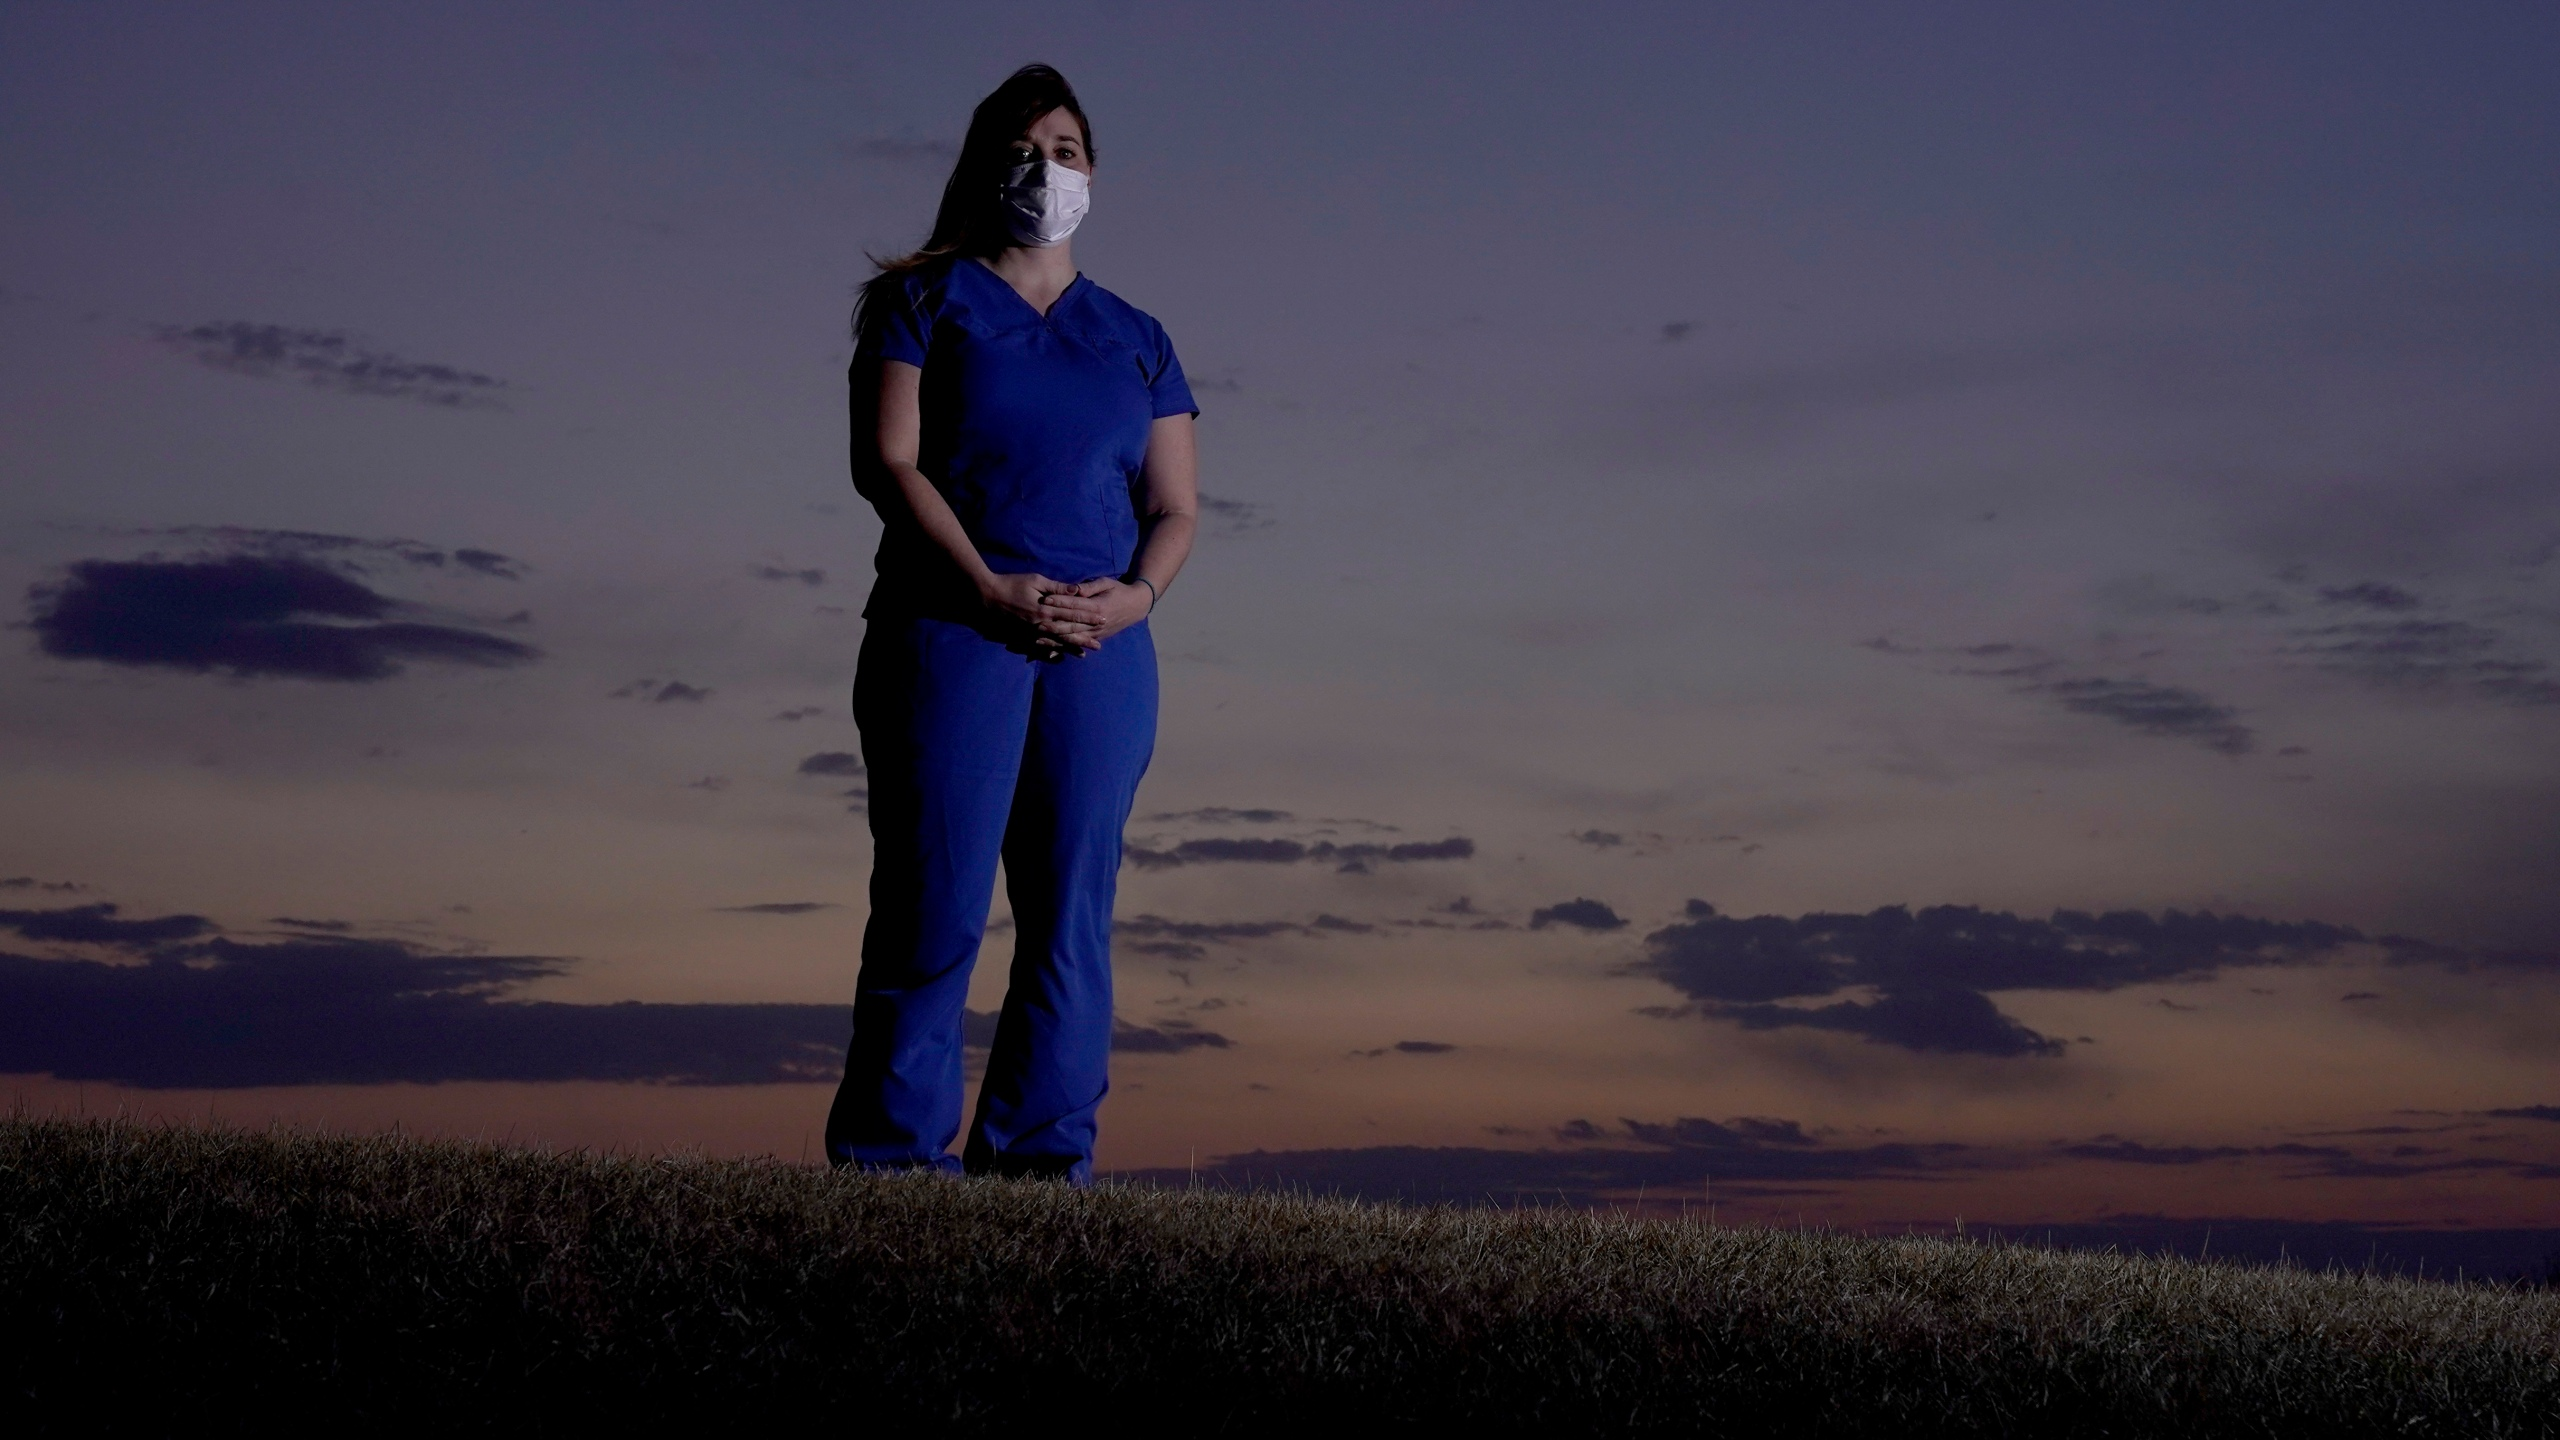 Emergency room nurse L'Erin Ogle stands at dawn before starting her 12-hour shift at a nearby hospital Tuesday, March 9, 2021, in Overland Park, Kan. (AP Photo/Charlie Riedel)